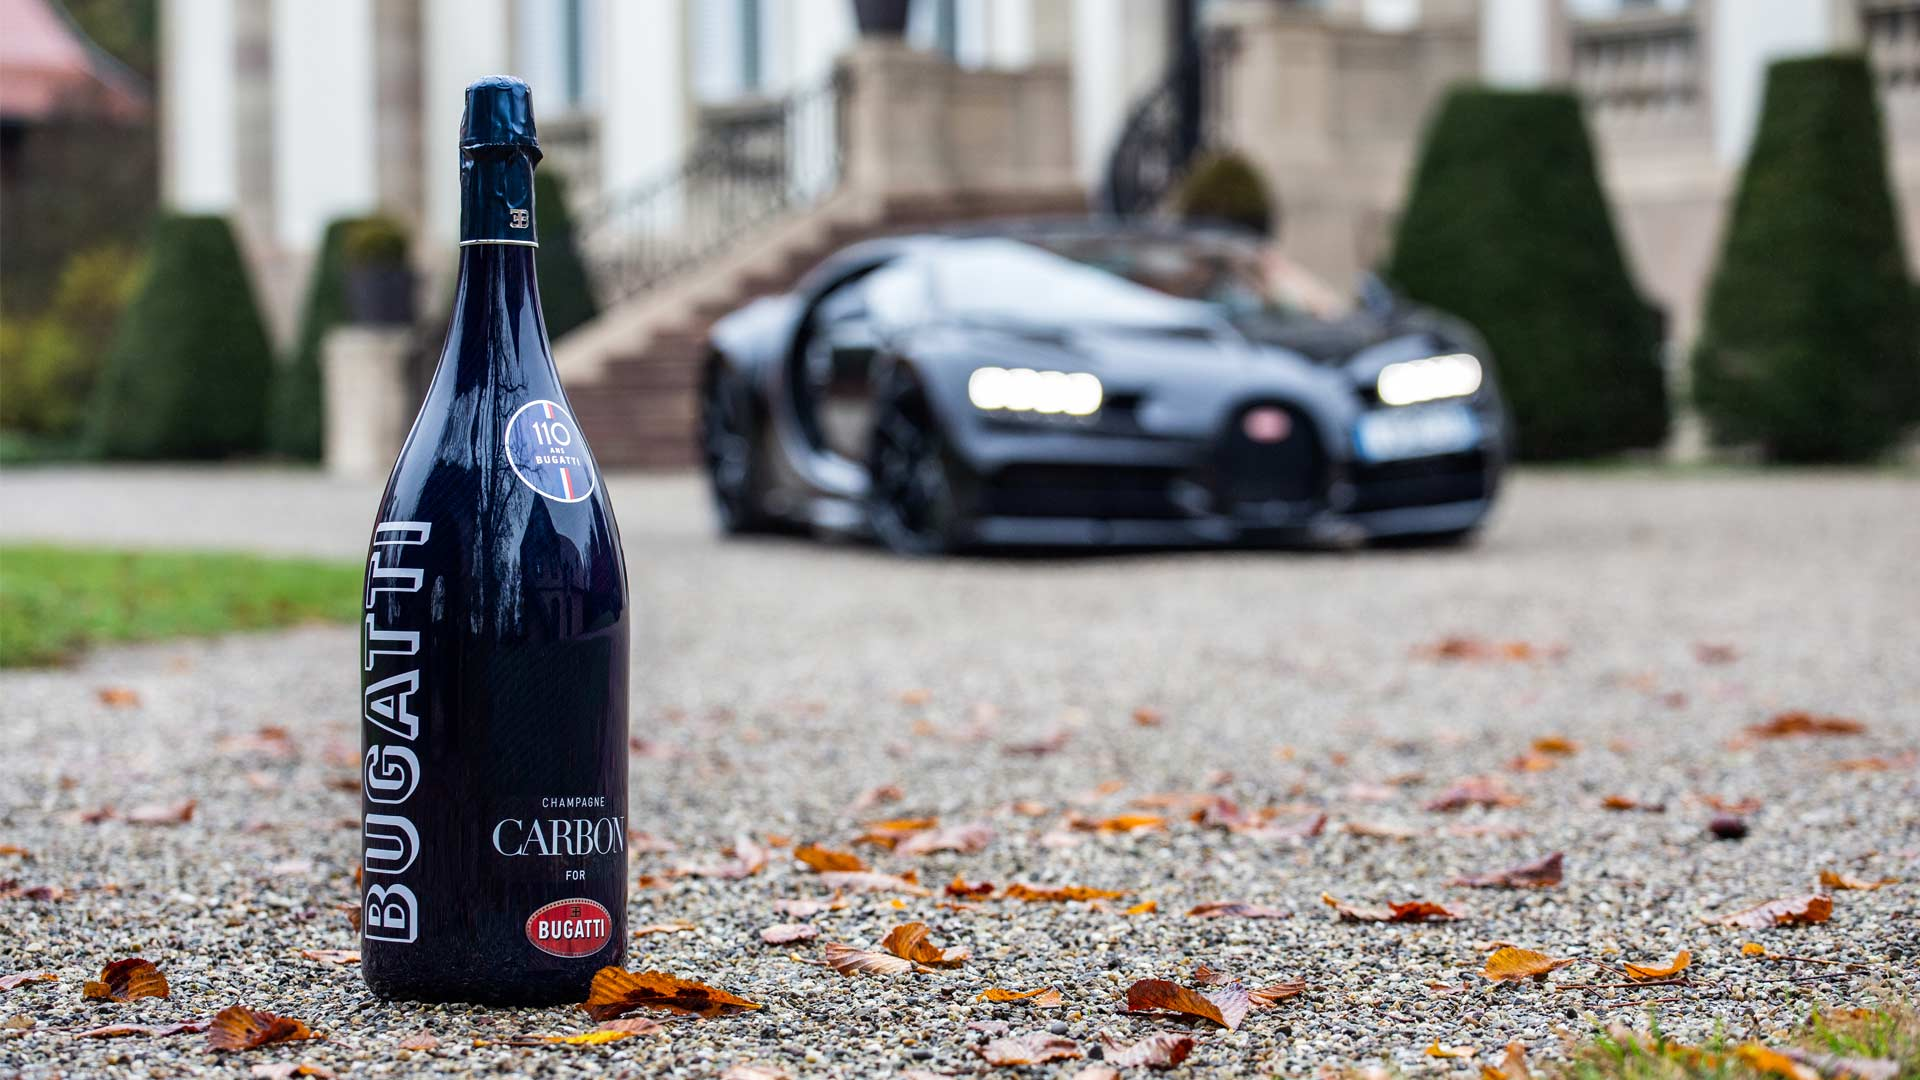 Bugatti and Champagne Carbon Partnership